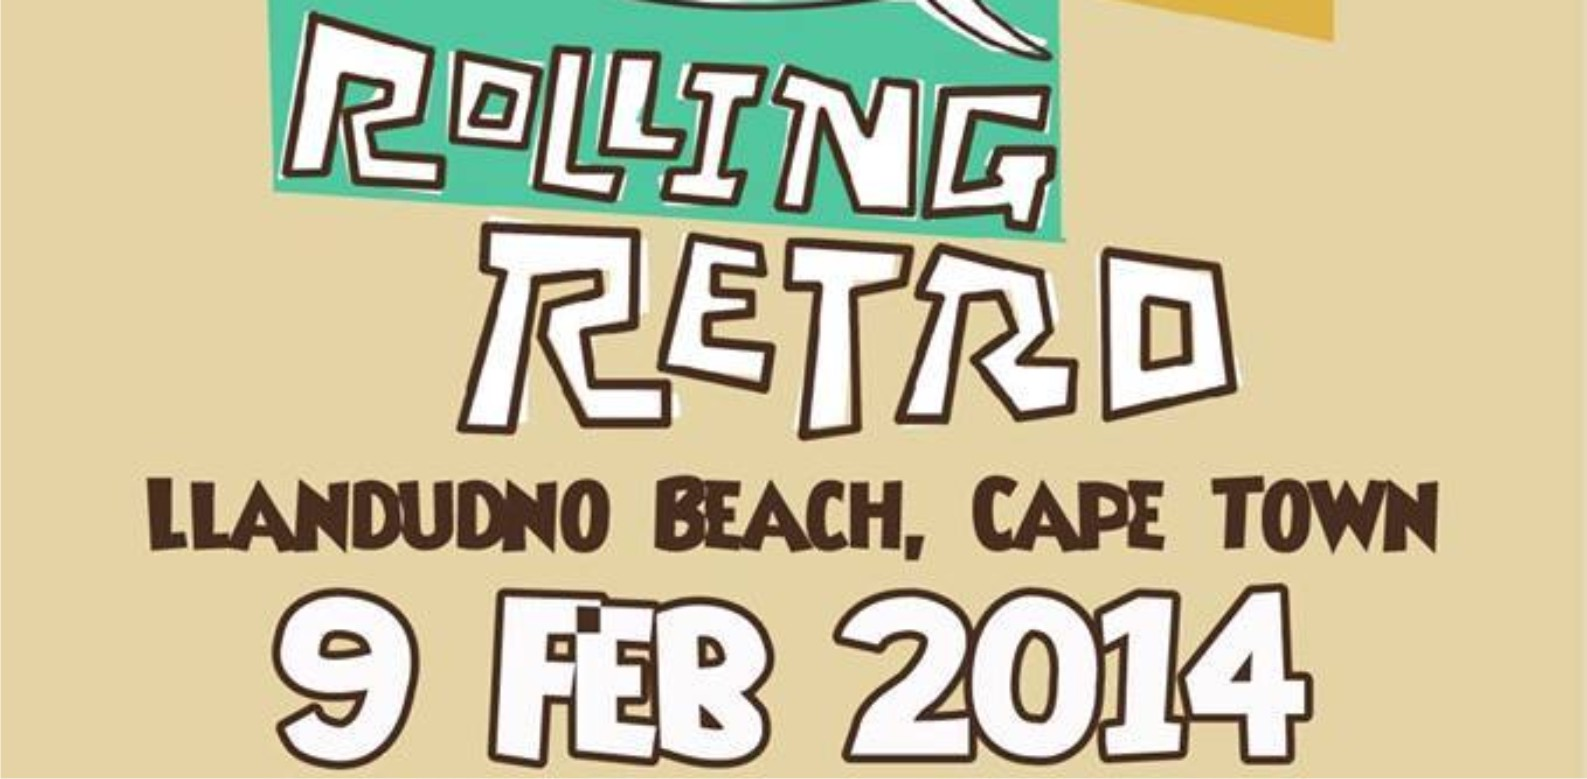 Rolling Retro surfing event is set to hit Llandudno beach